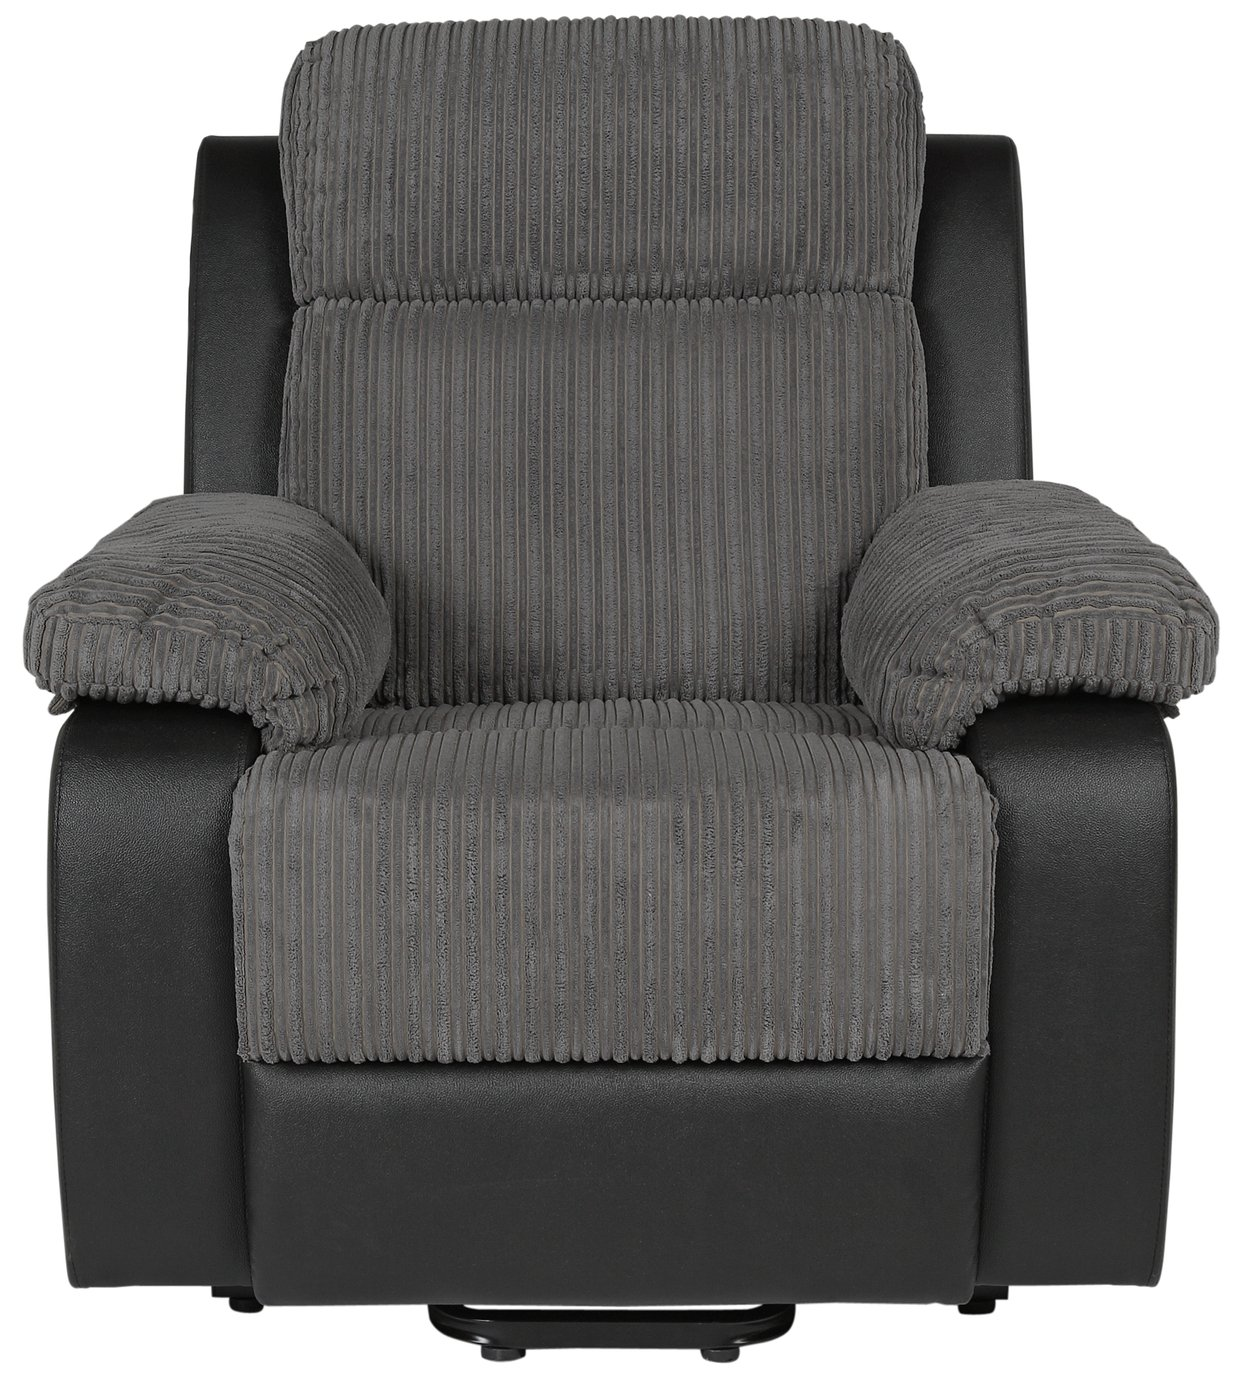 Argos Home Bradley Riser Recline Fabric Chair - Charcoal